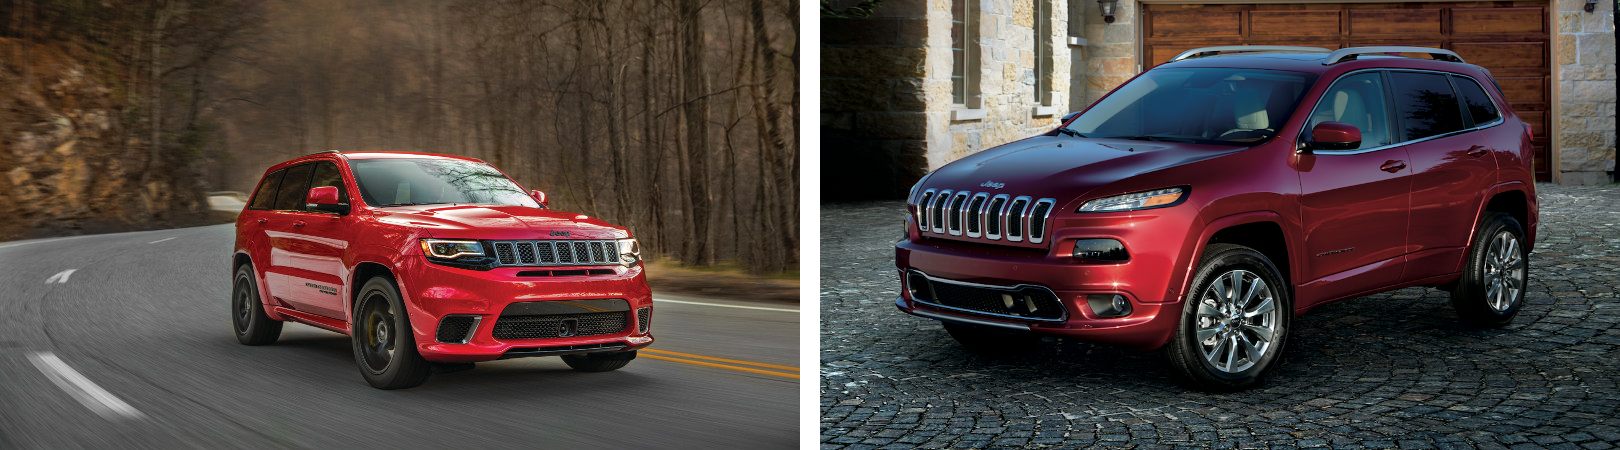 A comparison of the Jeep Grand Cherokee and Cherokee